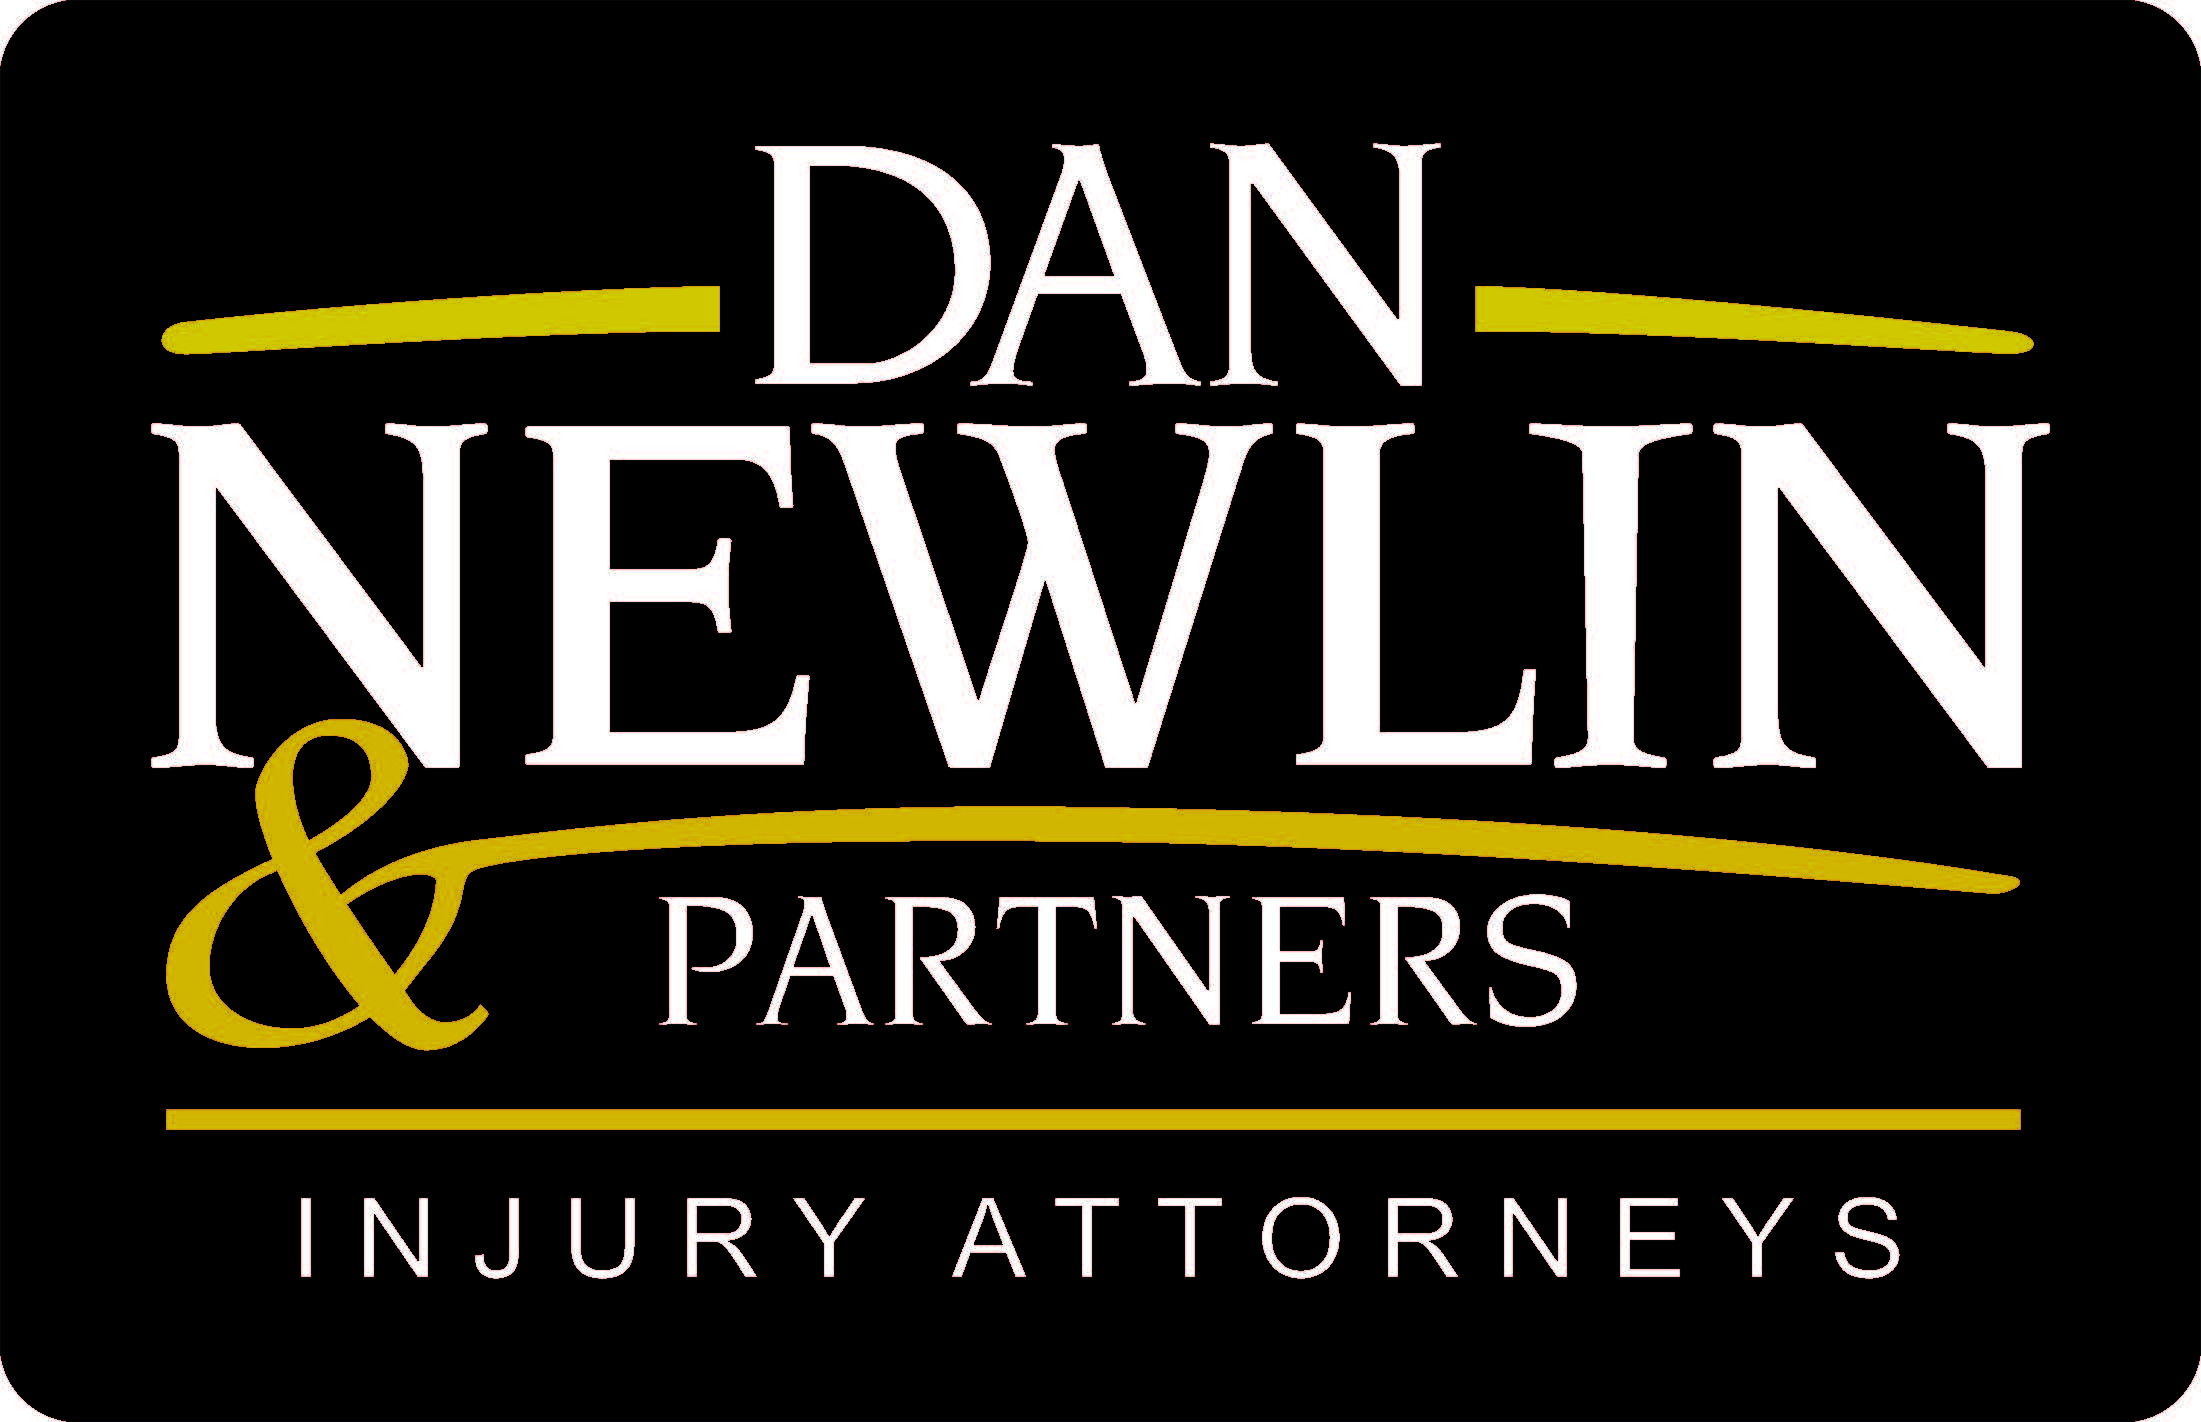 The Law Offices of Dan Newlin